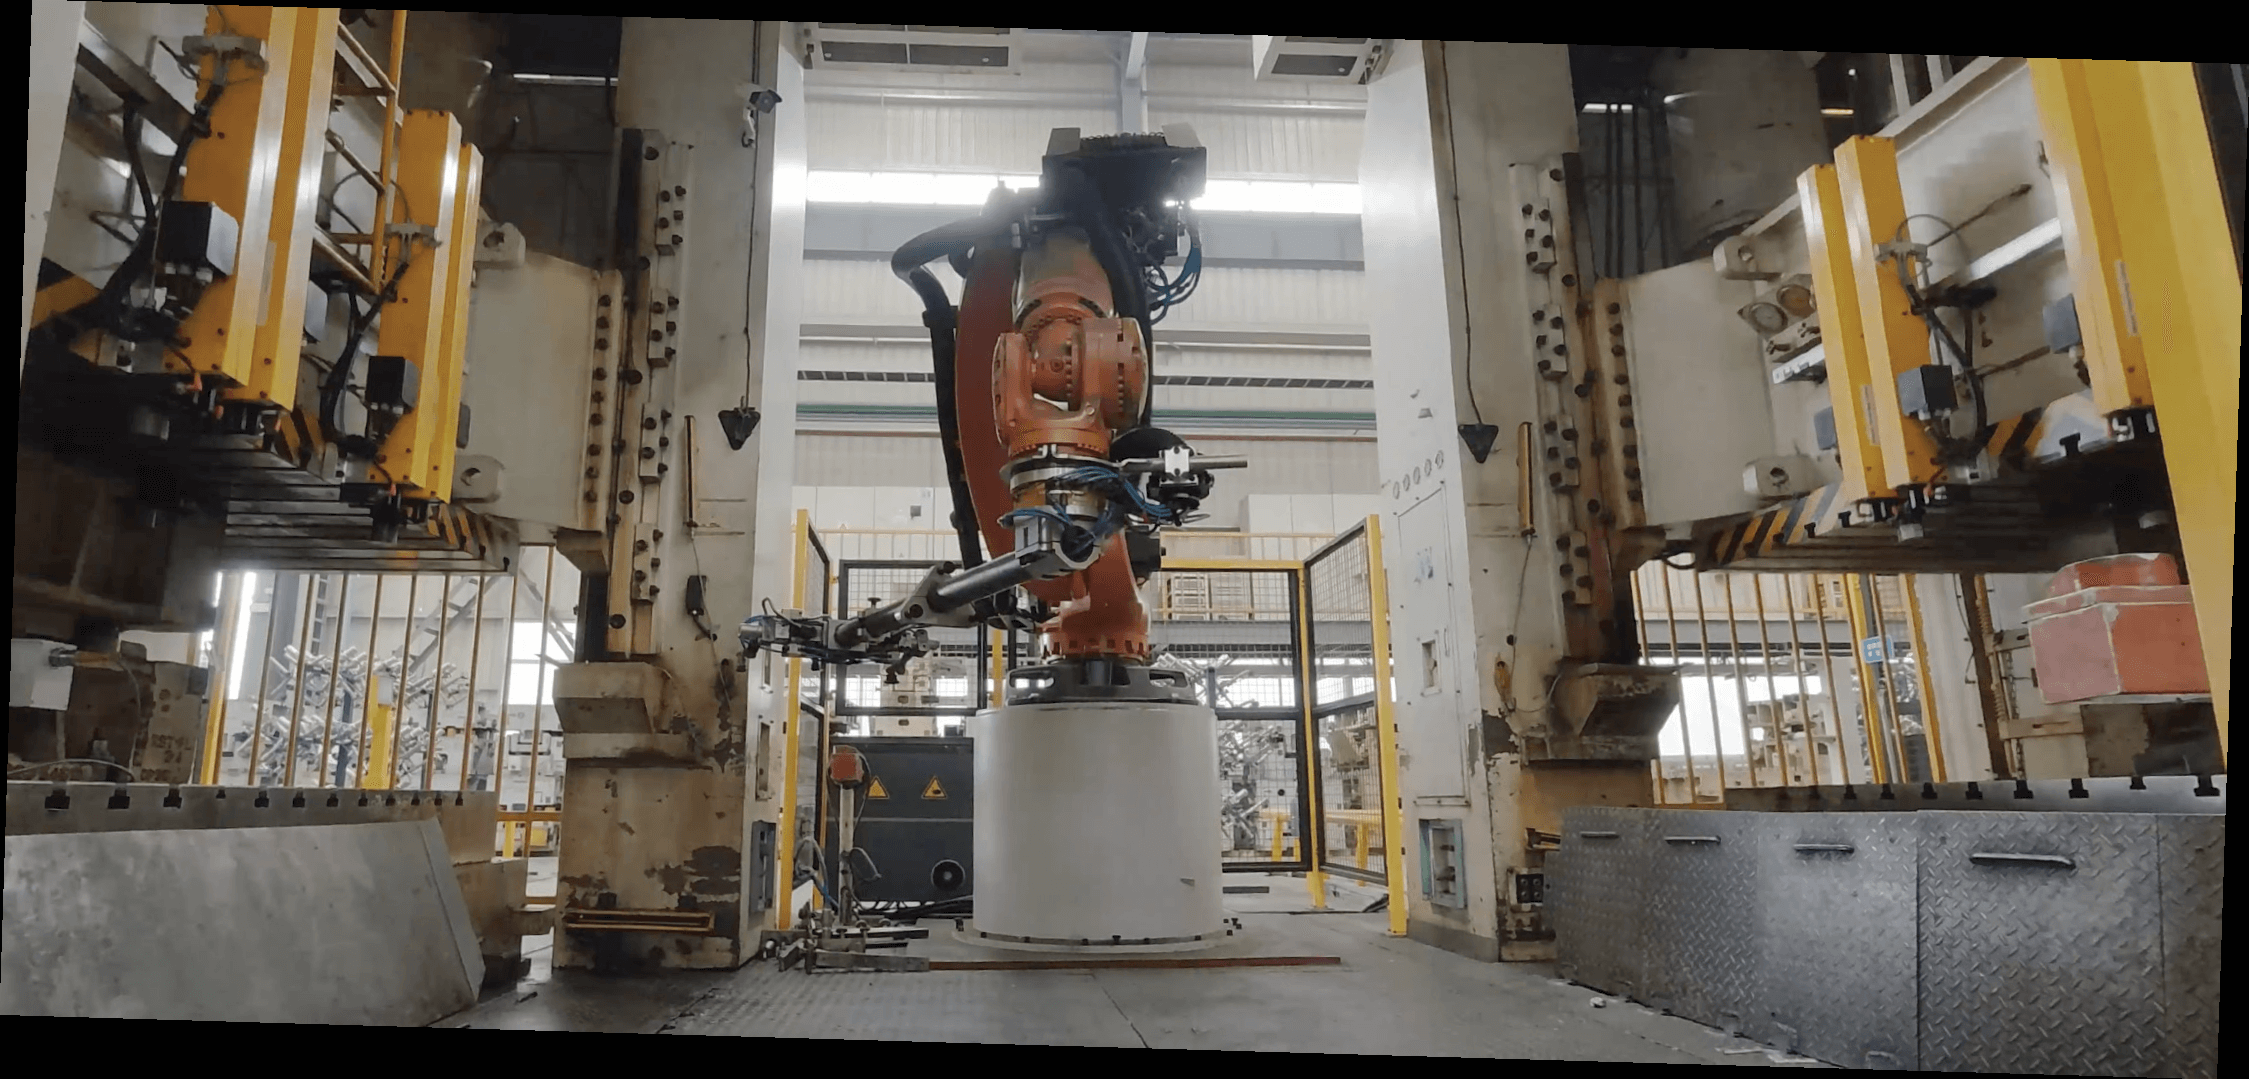 weben, the key to build your smart factory